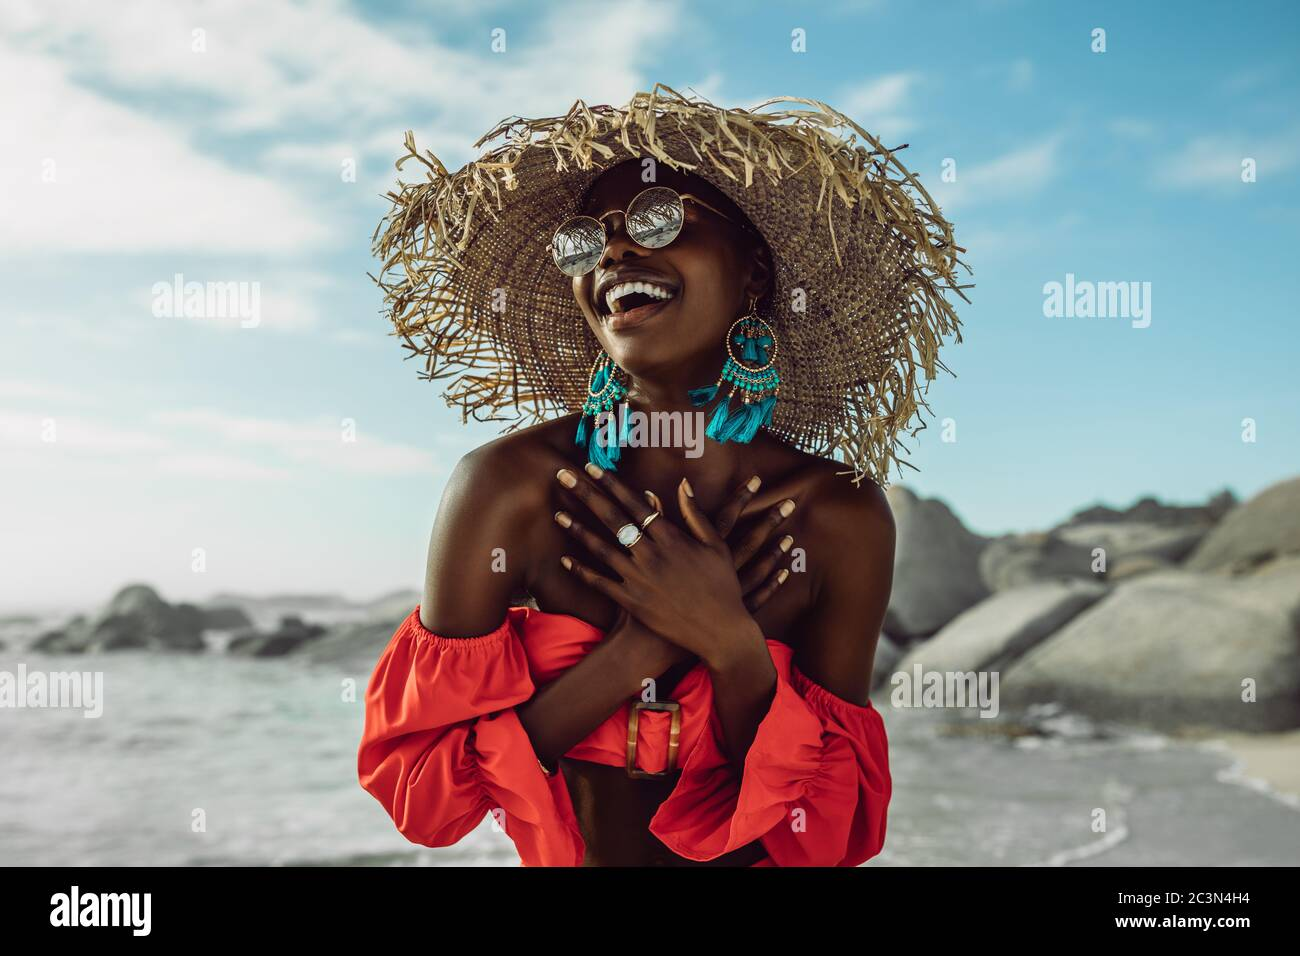 Beautiful african woman in red dress wearing straw hat smiling on the beach. Female in sundress enjoying on the beach. Stock Photo